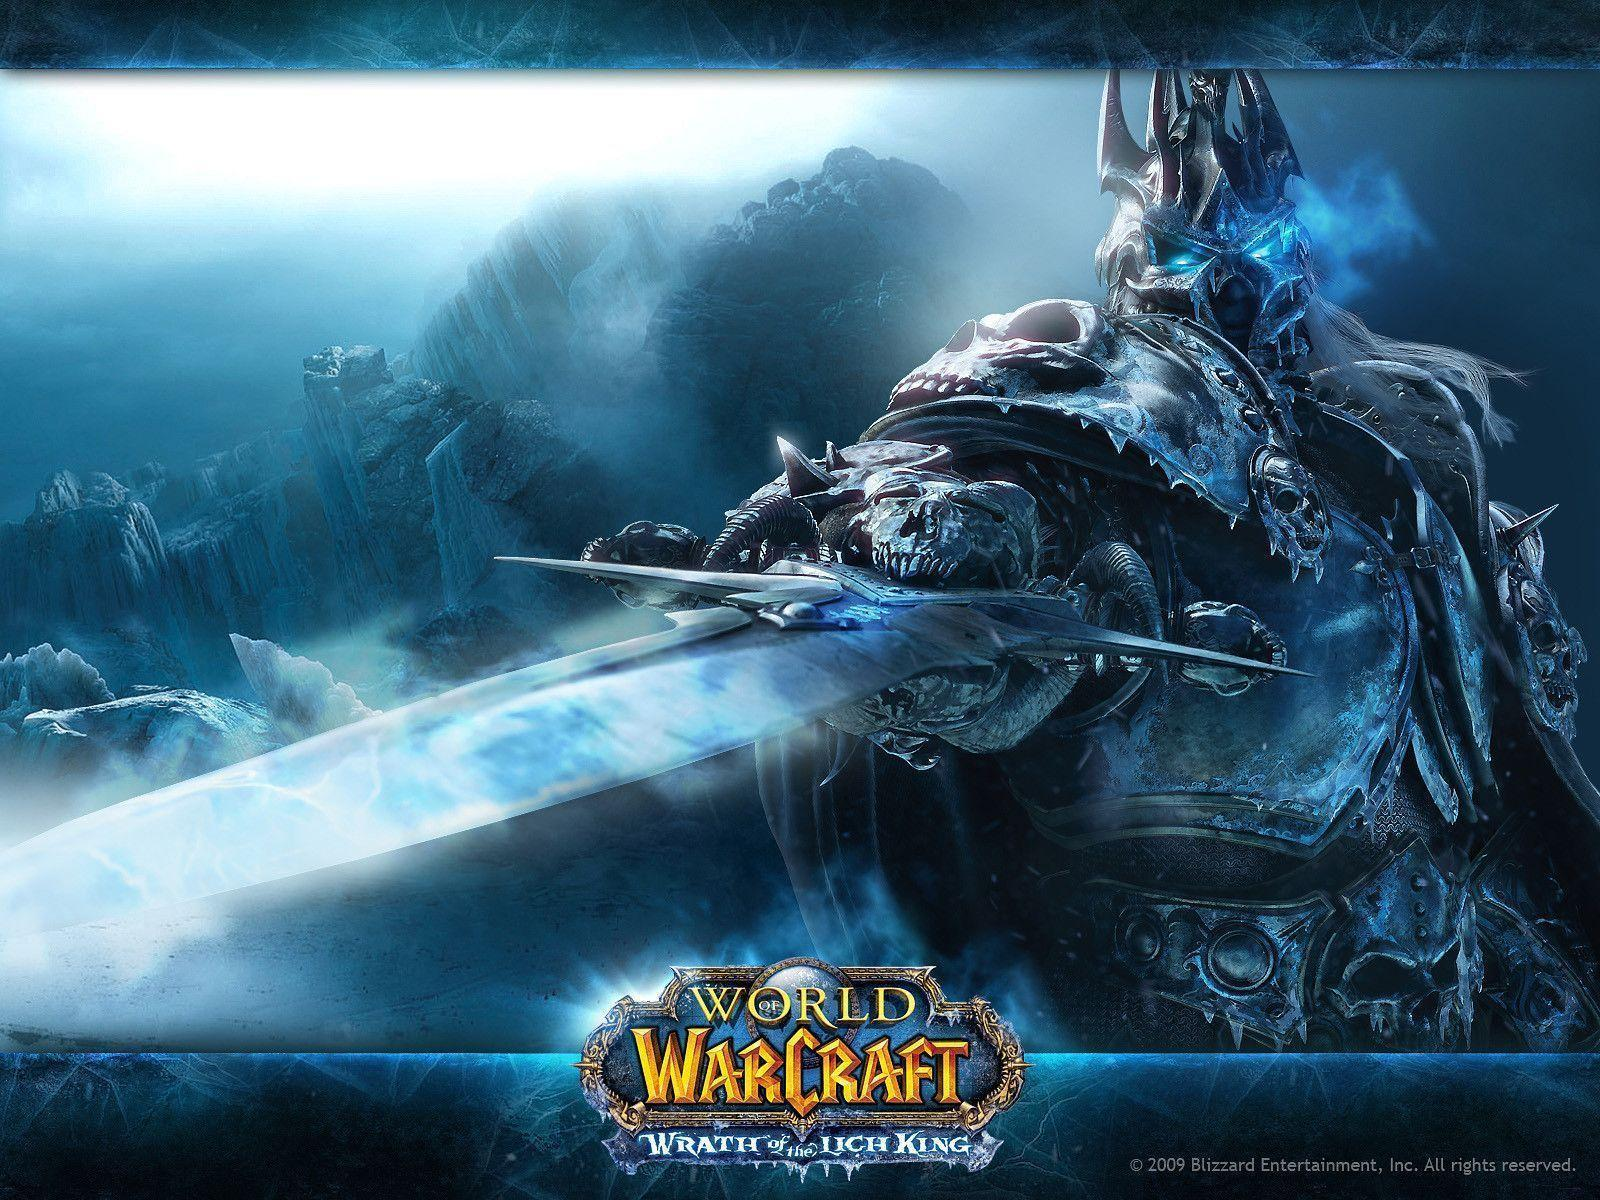 Blizzard Entertainment: World of Warcraft: Wrath of the Lich King